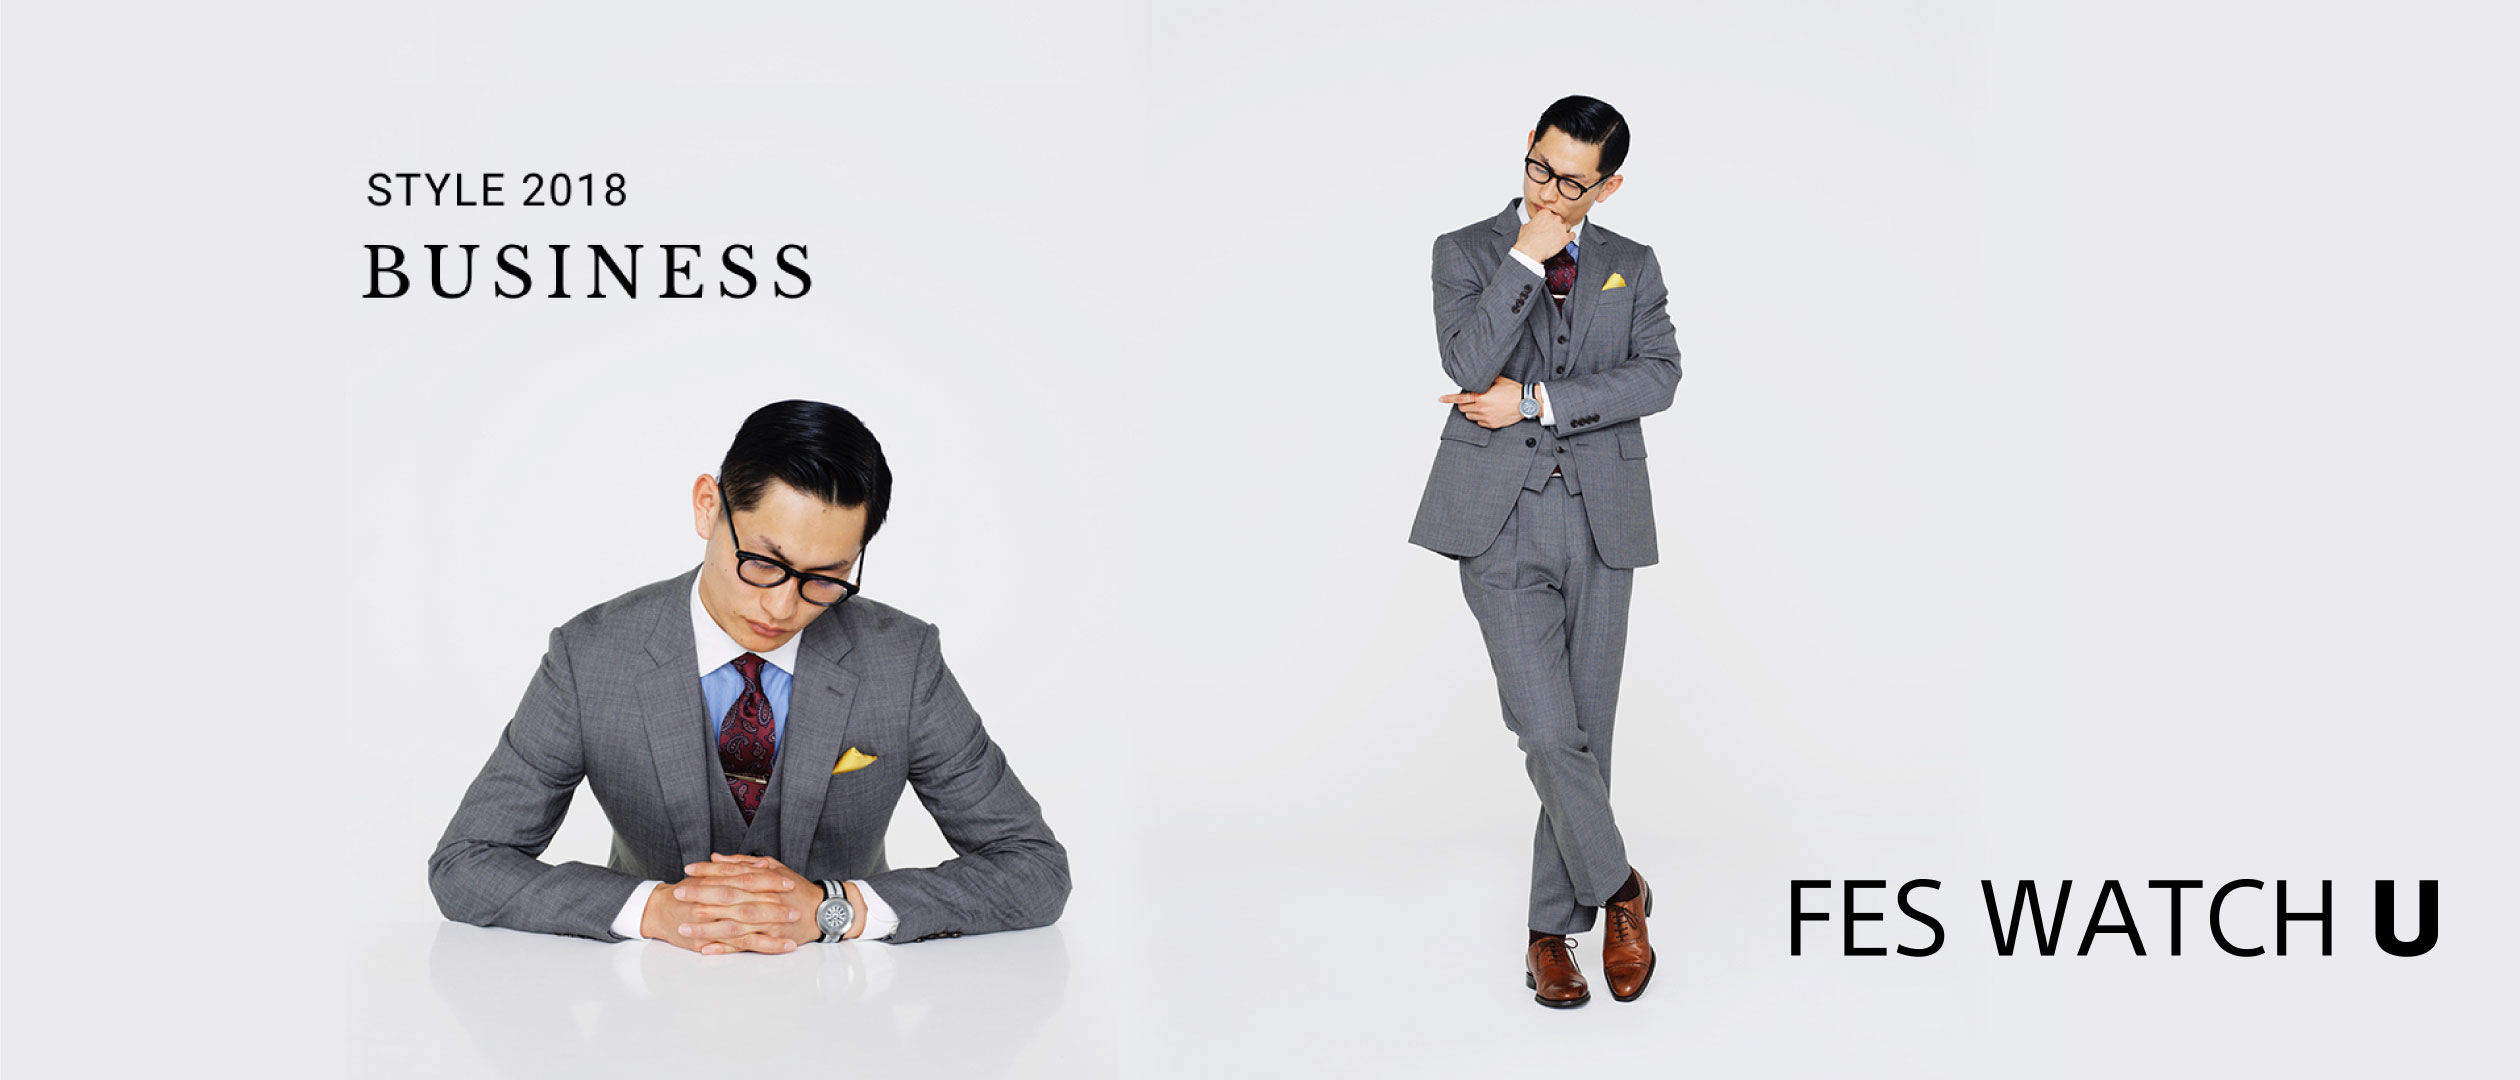 STYLE 2018 BUSINESS